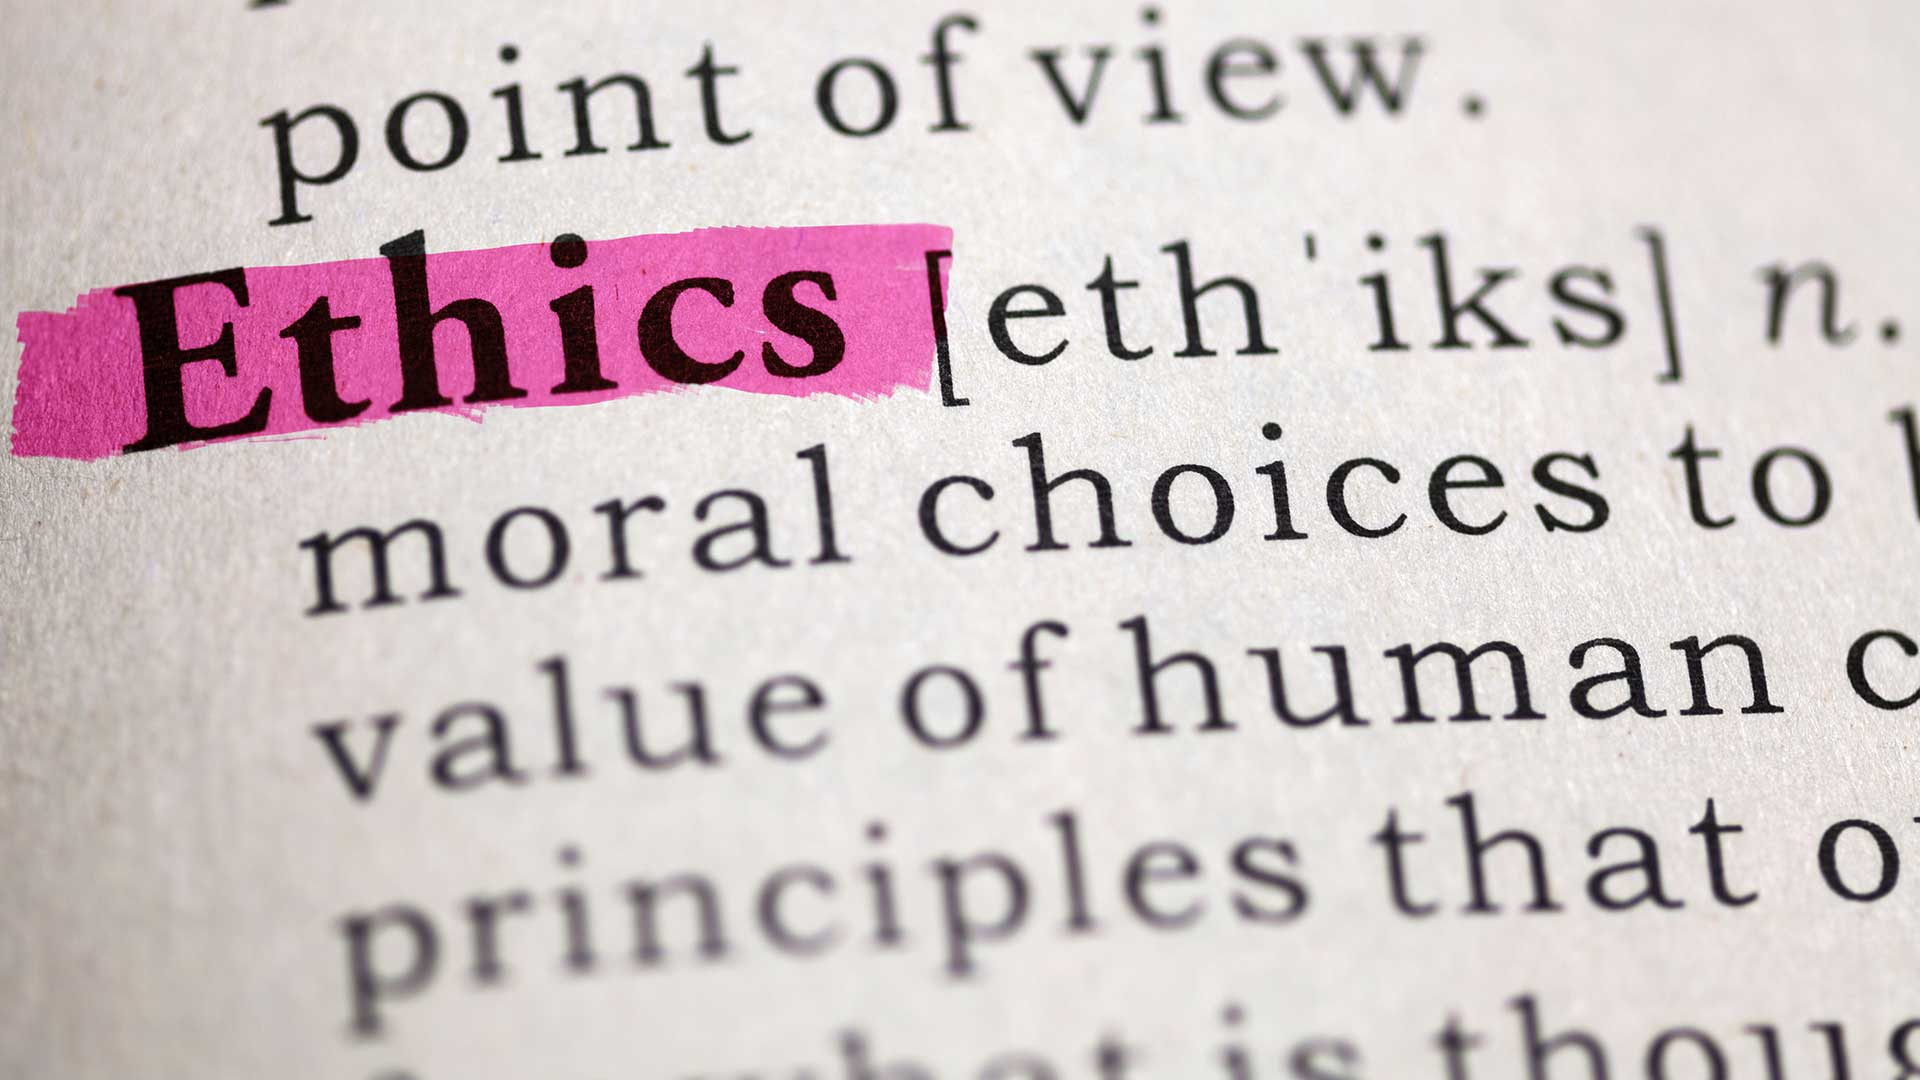 ethics definition from dictionary